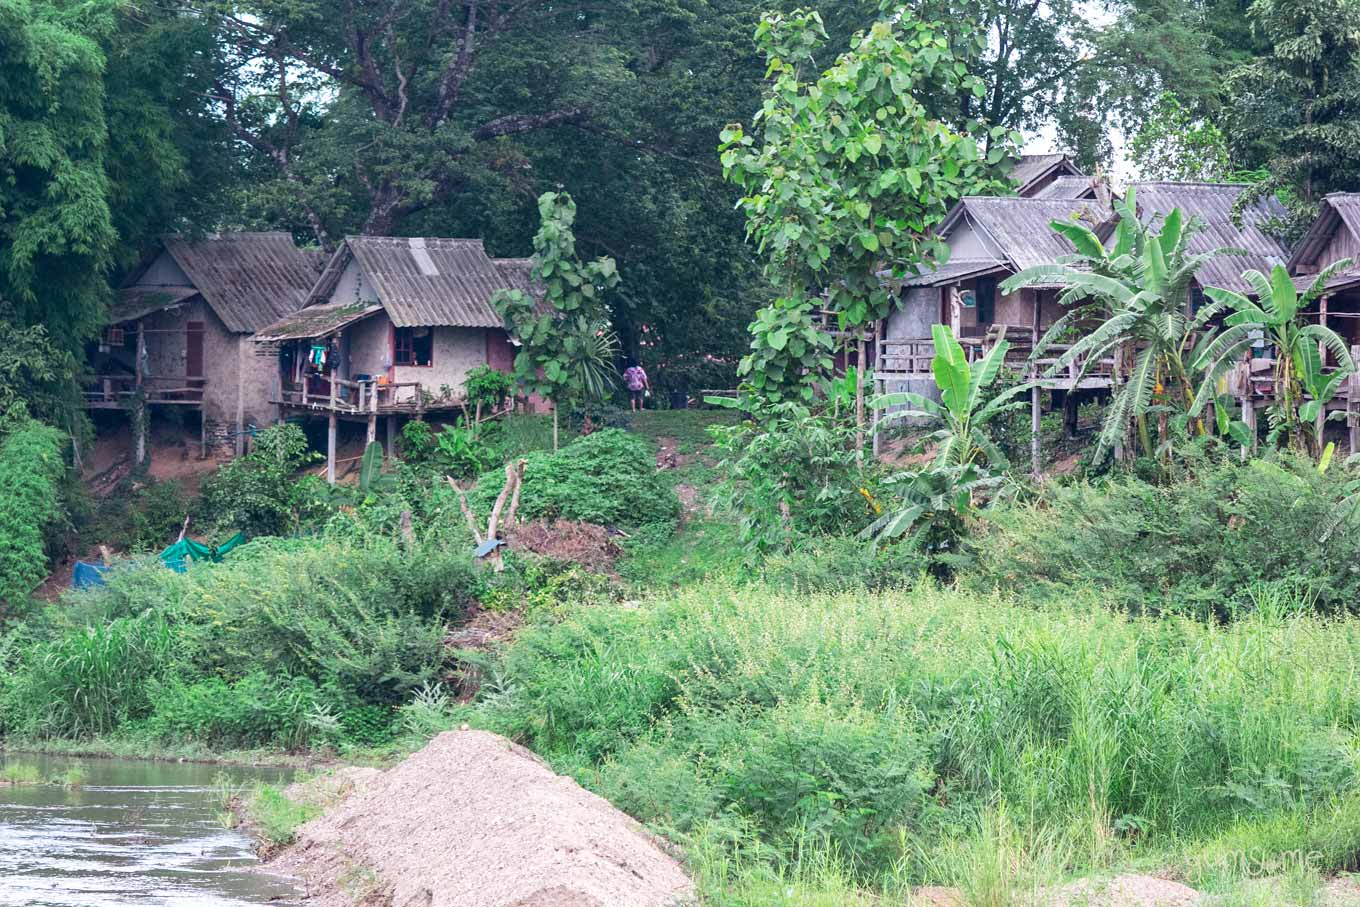 Traditional riverside wooden houses on stilts in a Northern Thai village, surrounded by lush jungle foliage.